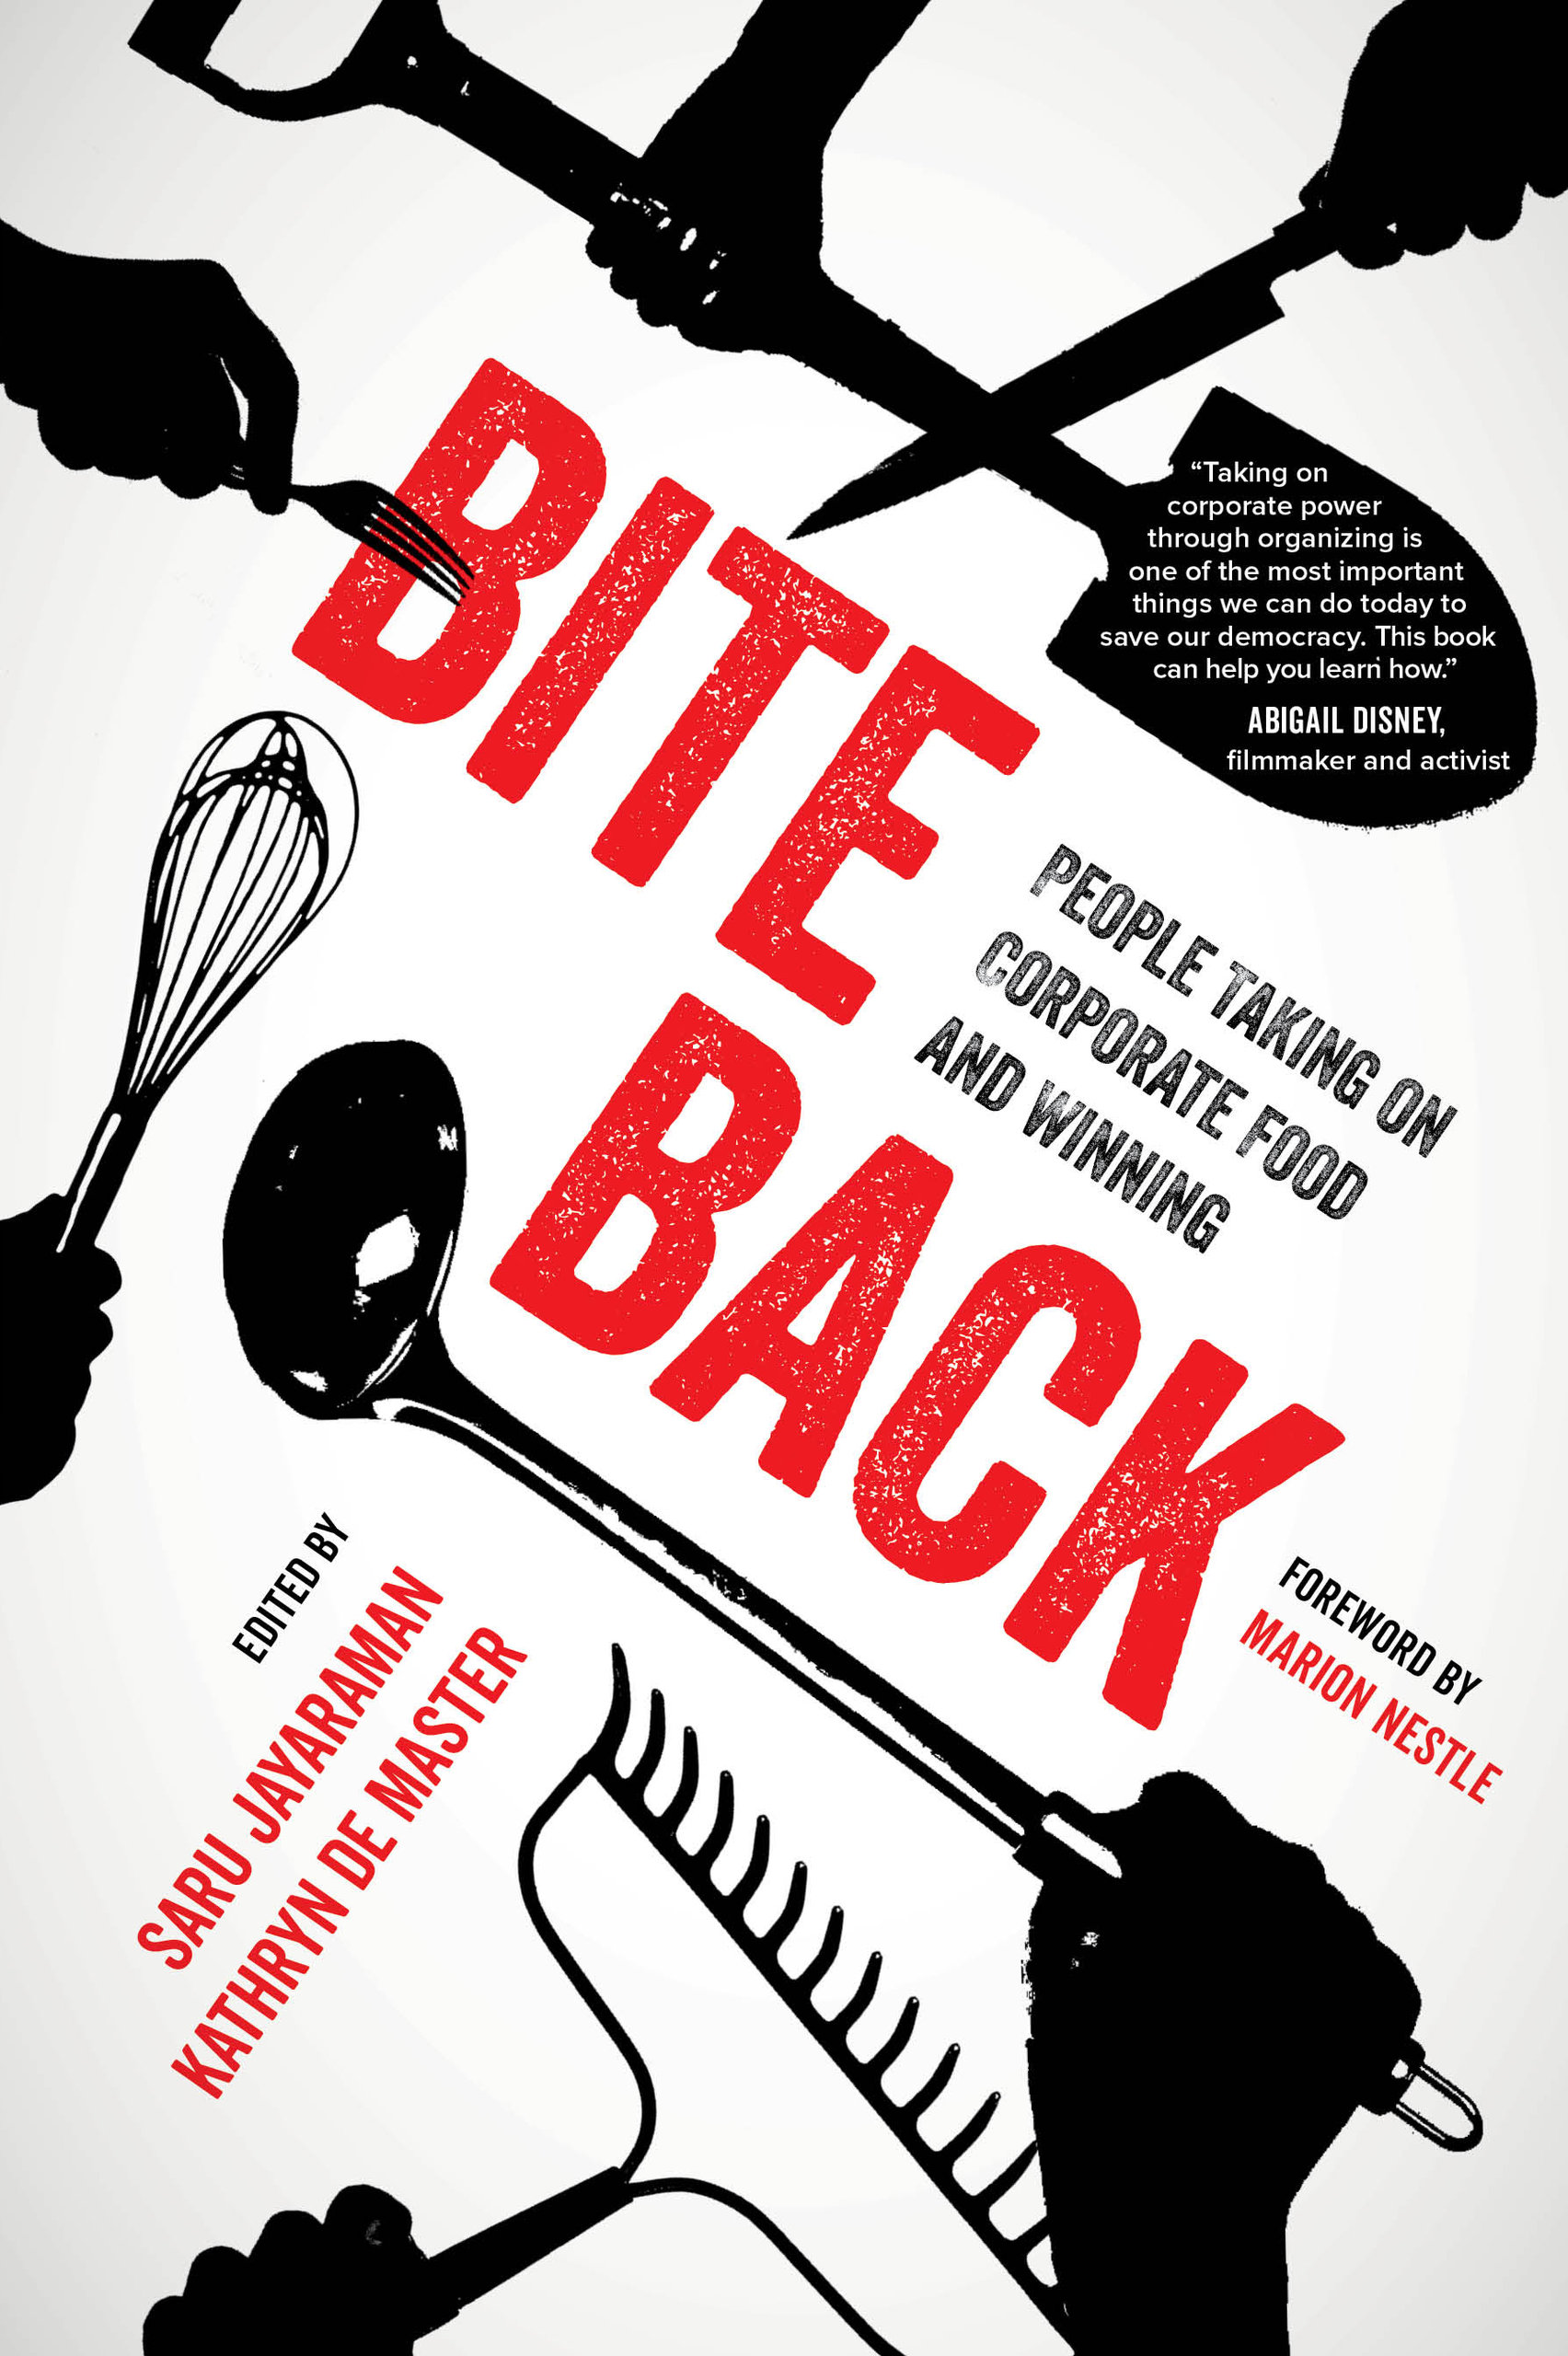 Bite Back book cover, published by University of California Press